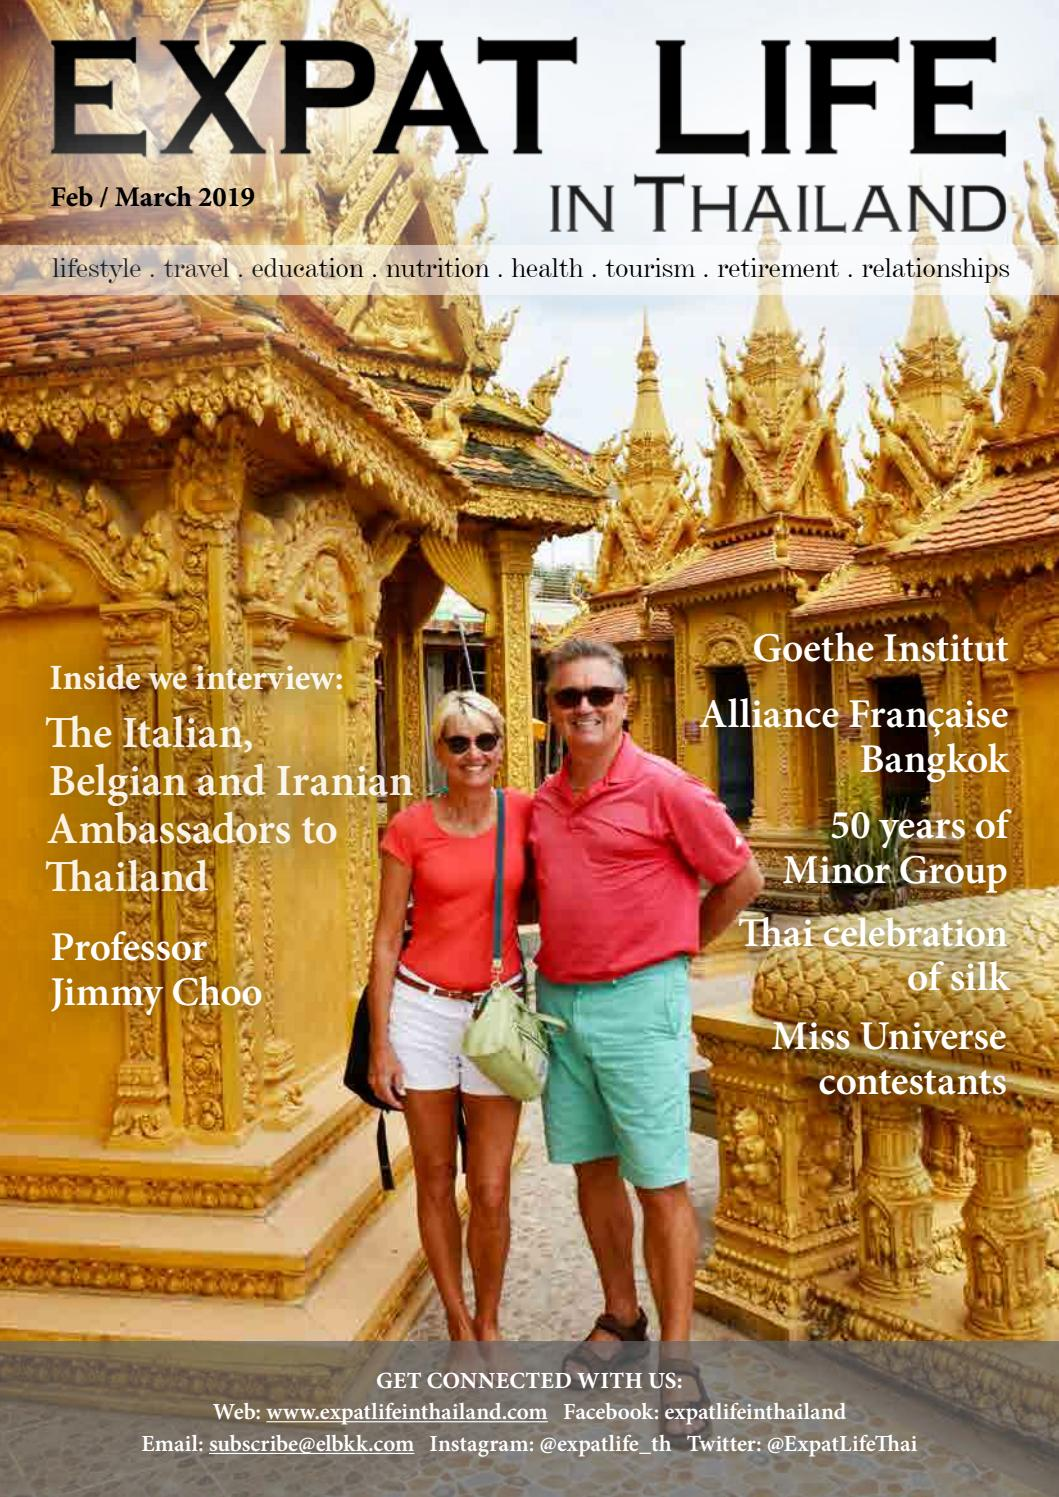 Expat Life in Thailand February/March 2019 by Expat Life in